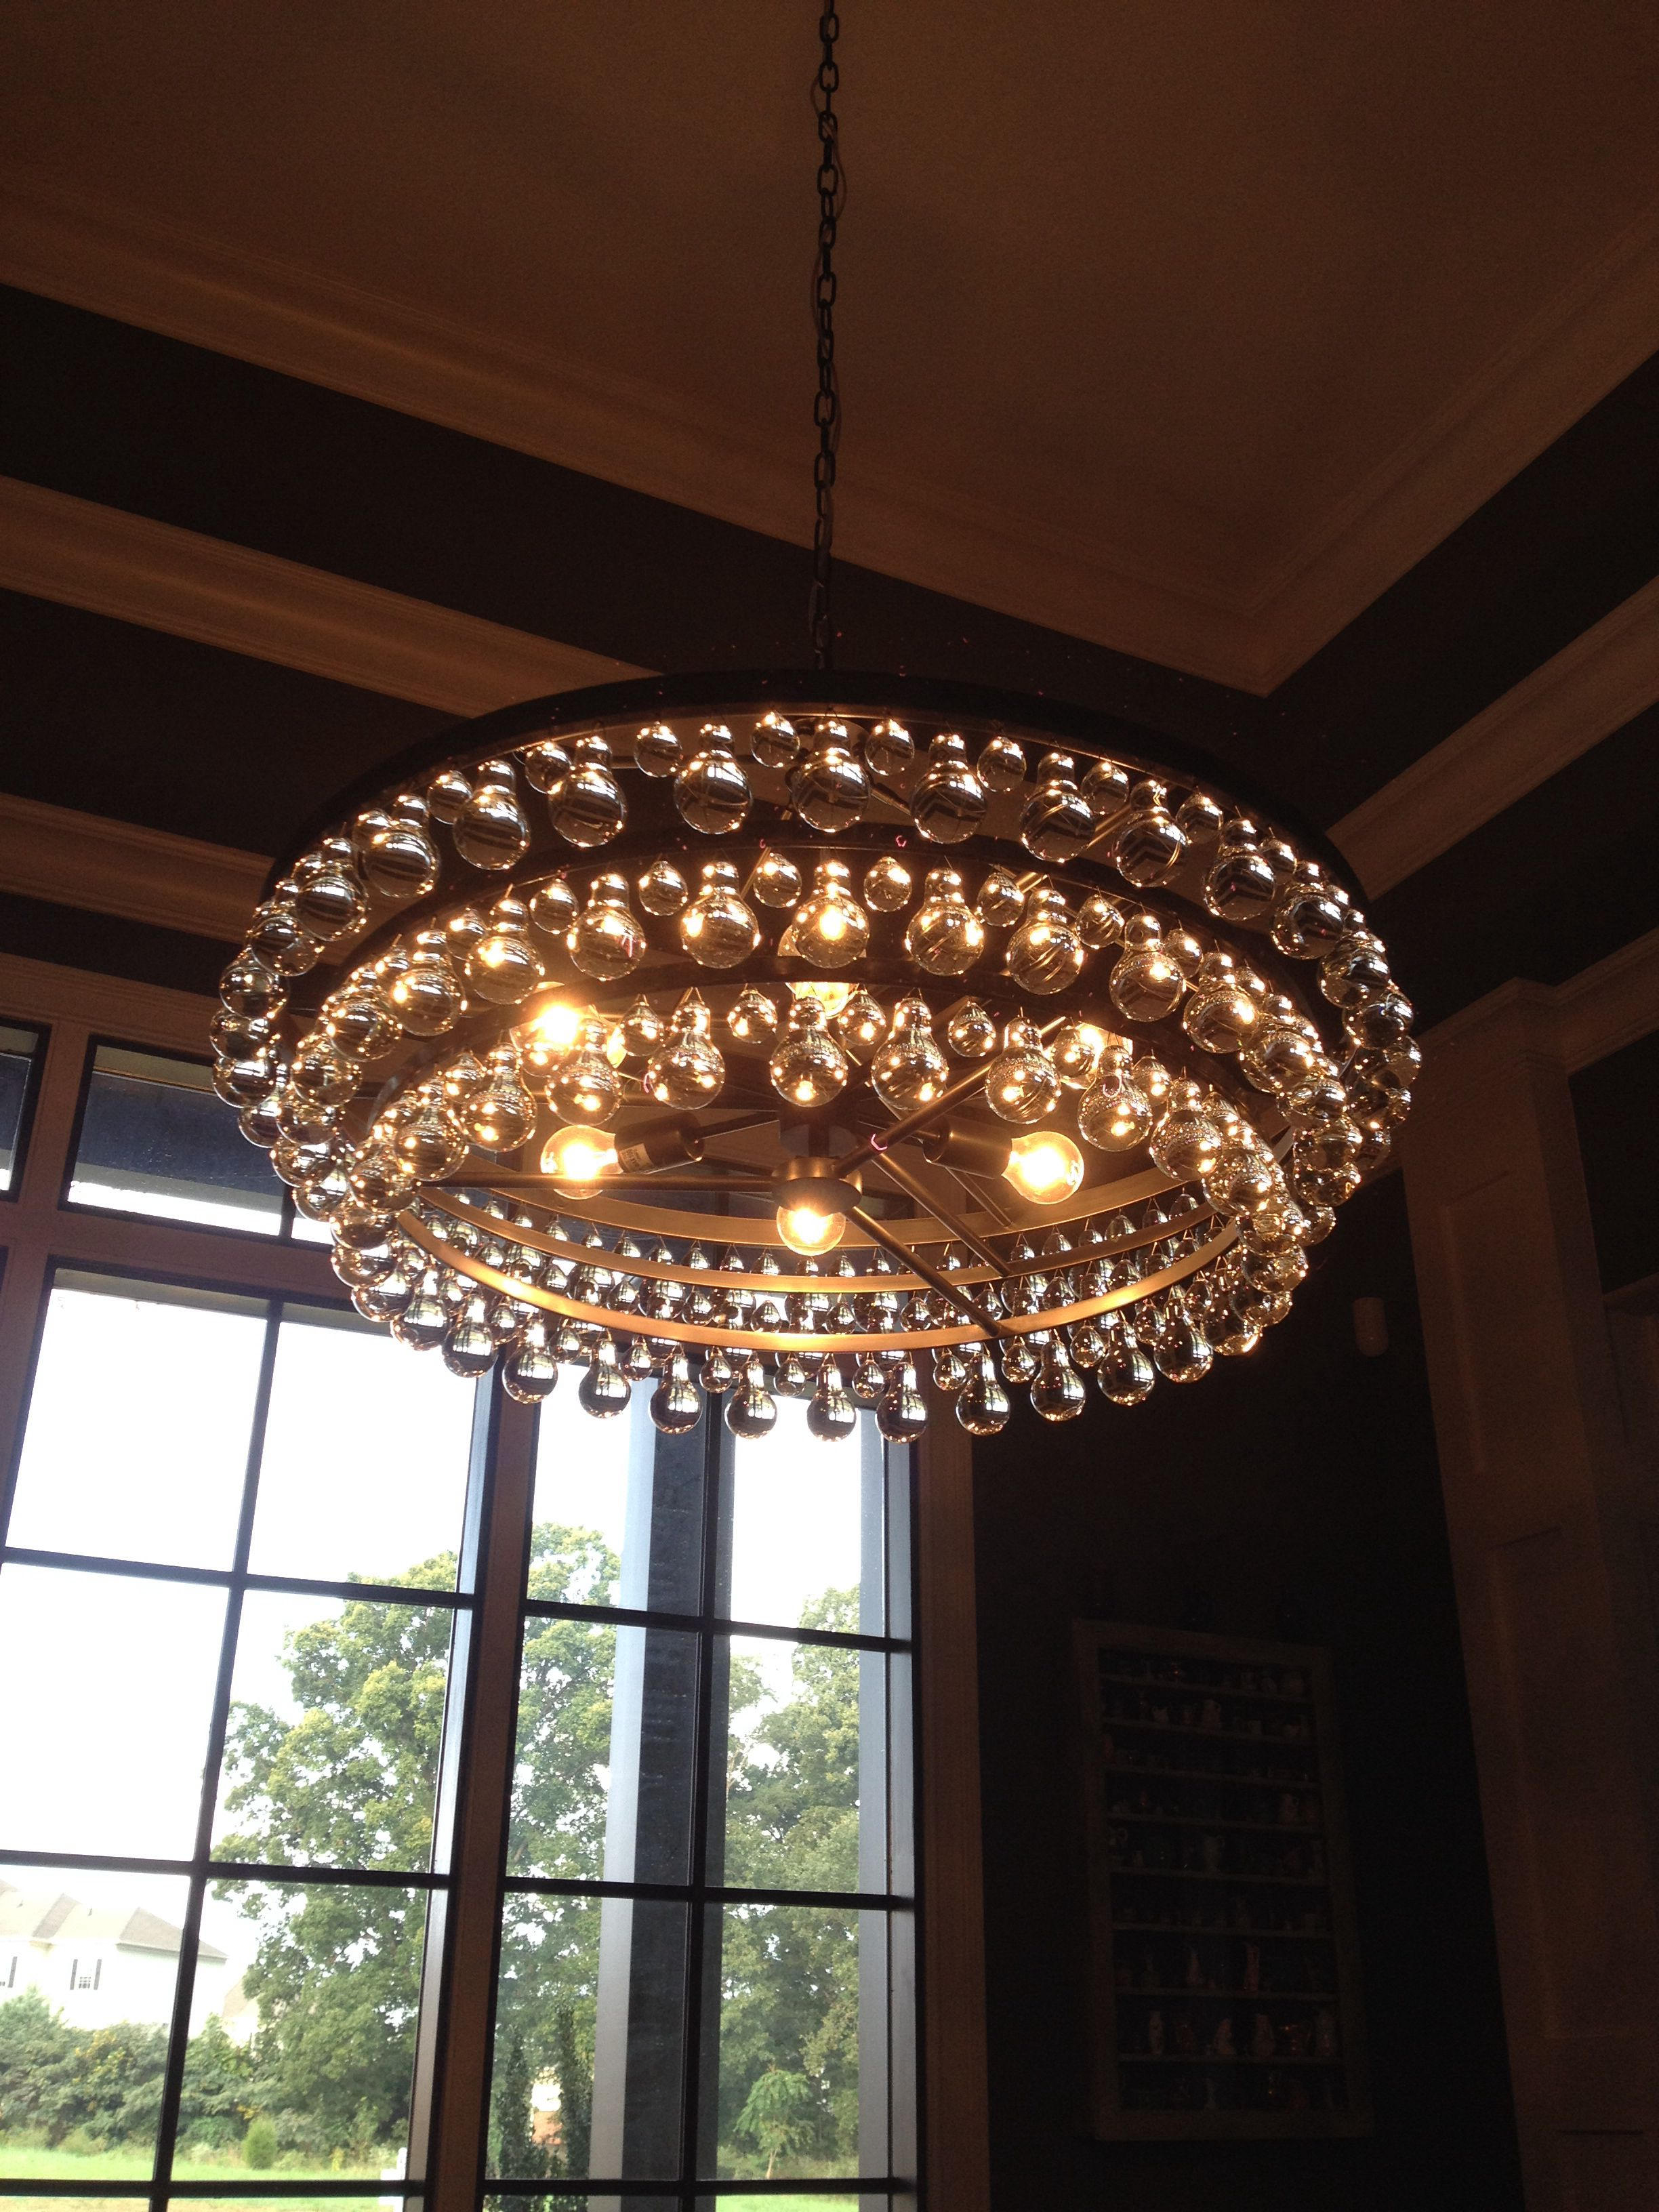 Robert abbey bling chandelier chez moi pinterest robert abbey bling chandelier aloadofball Image collections